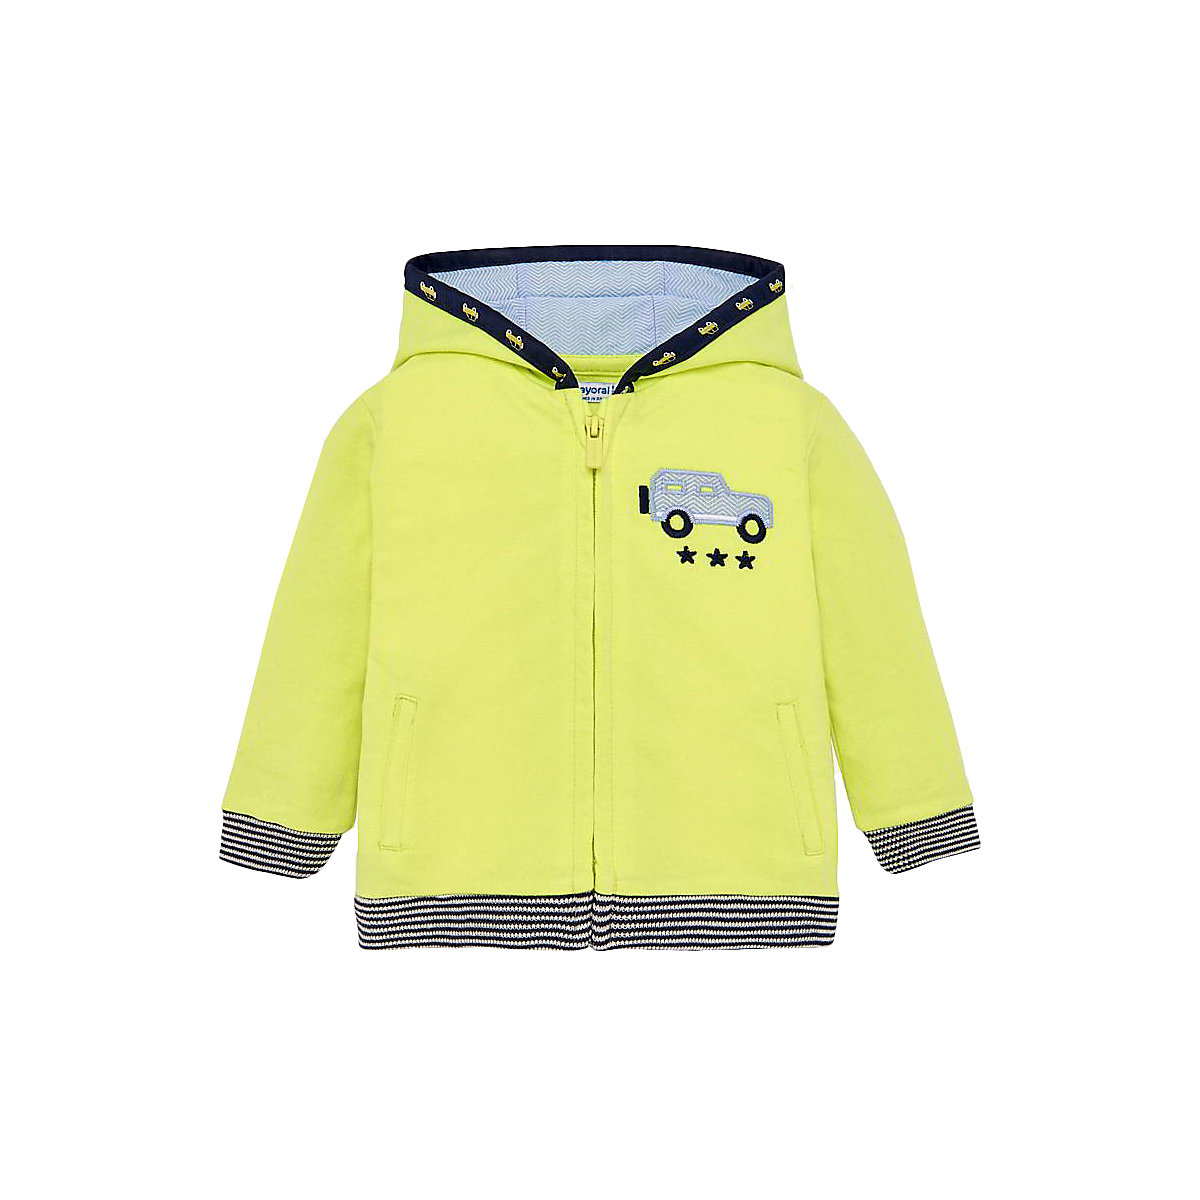 Фото - MAYORAL Hoodies & Sweatshirts 10685105 pullover jumper for boys and girls clothes children's sweatshirt Polyester Boys mayoral sweaters 10692403 pullover jumper for boys and girls jackets boys